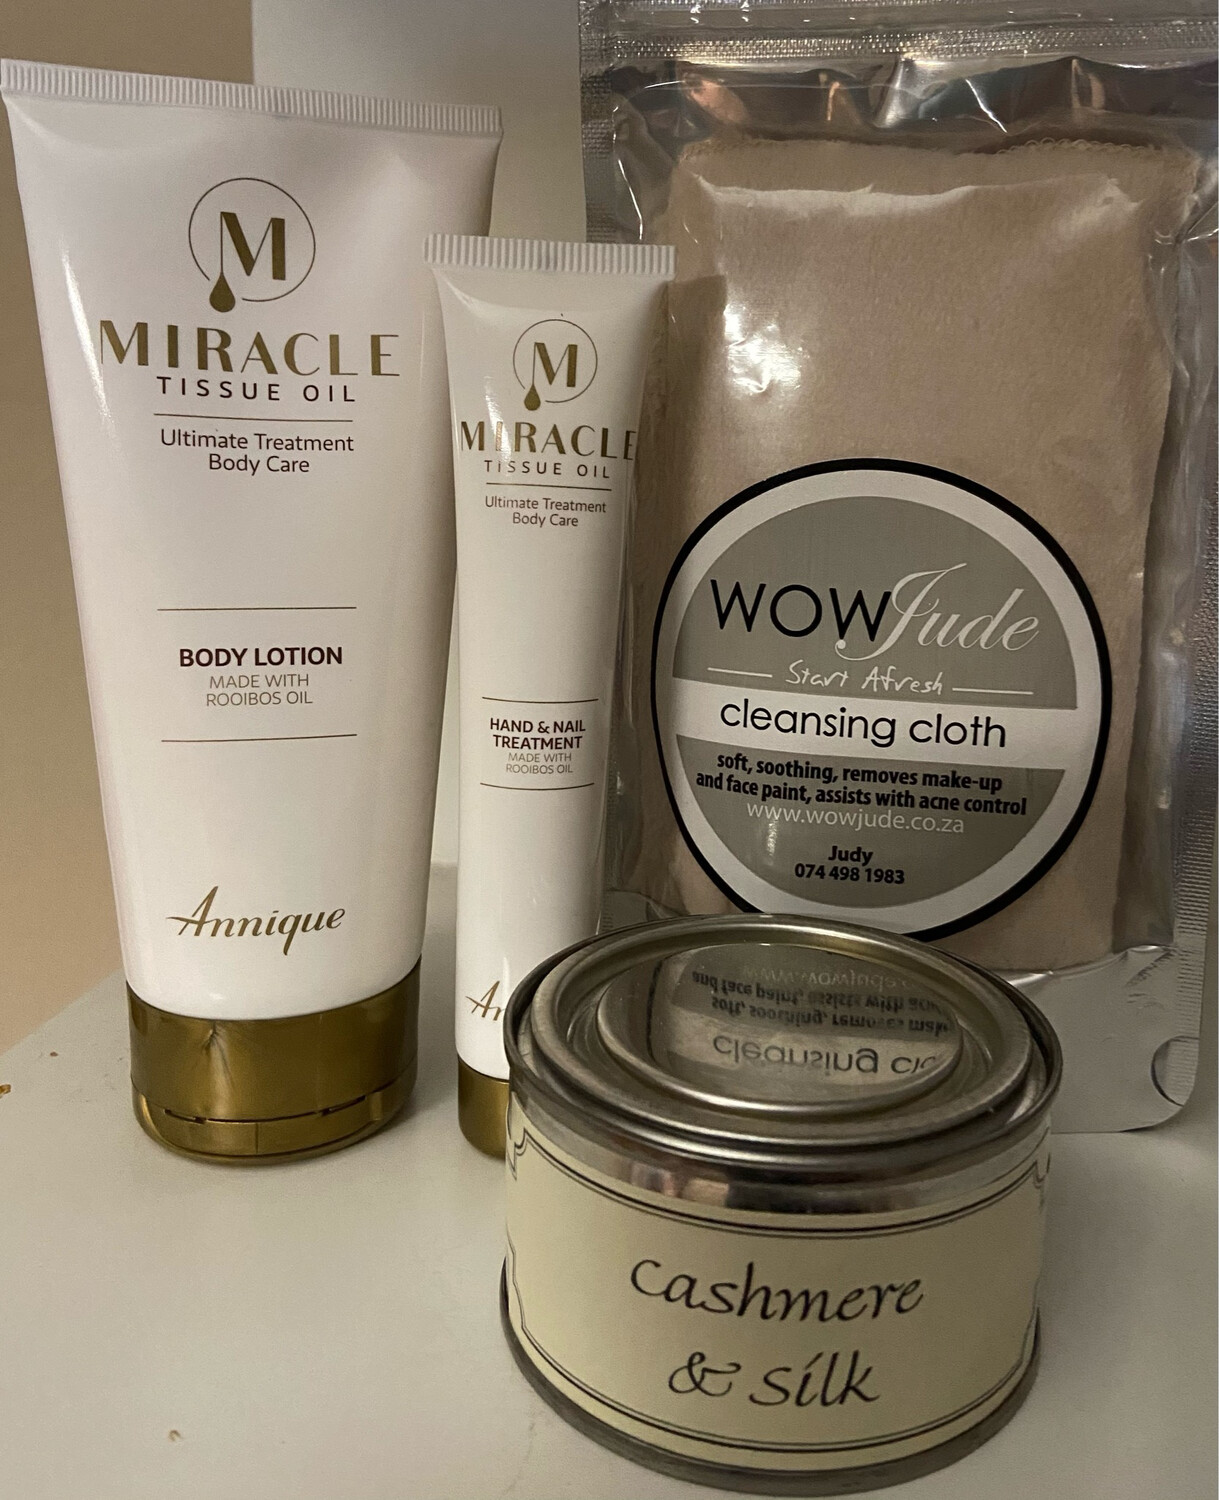 Mothers Day Miracle Tissue Oil Annique Gift Pack